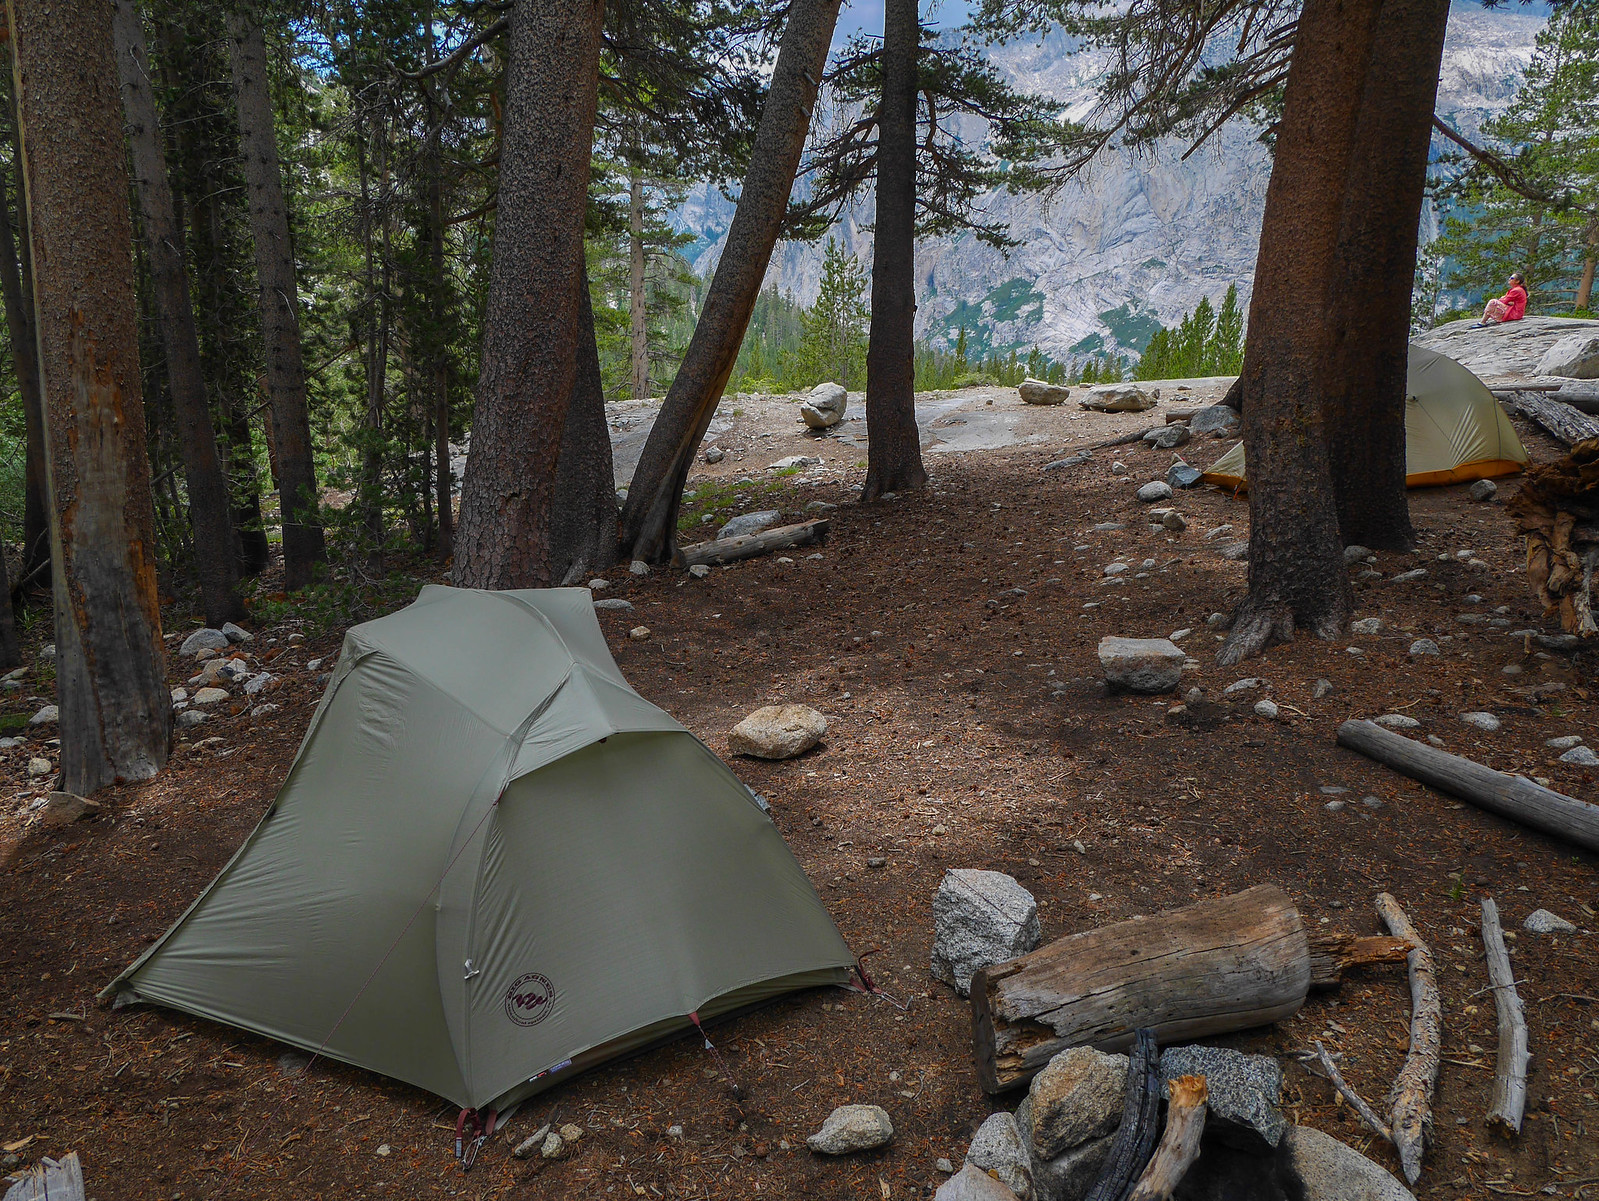 Camp at 9,900ft up the Dusy Branch